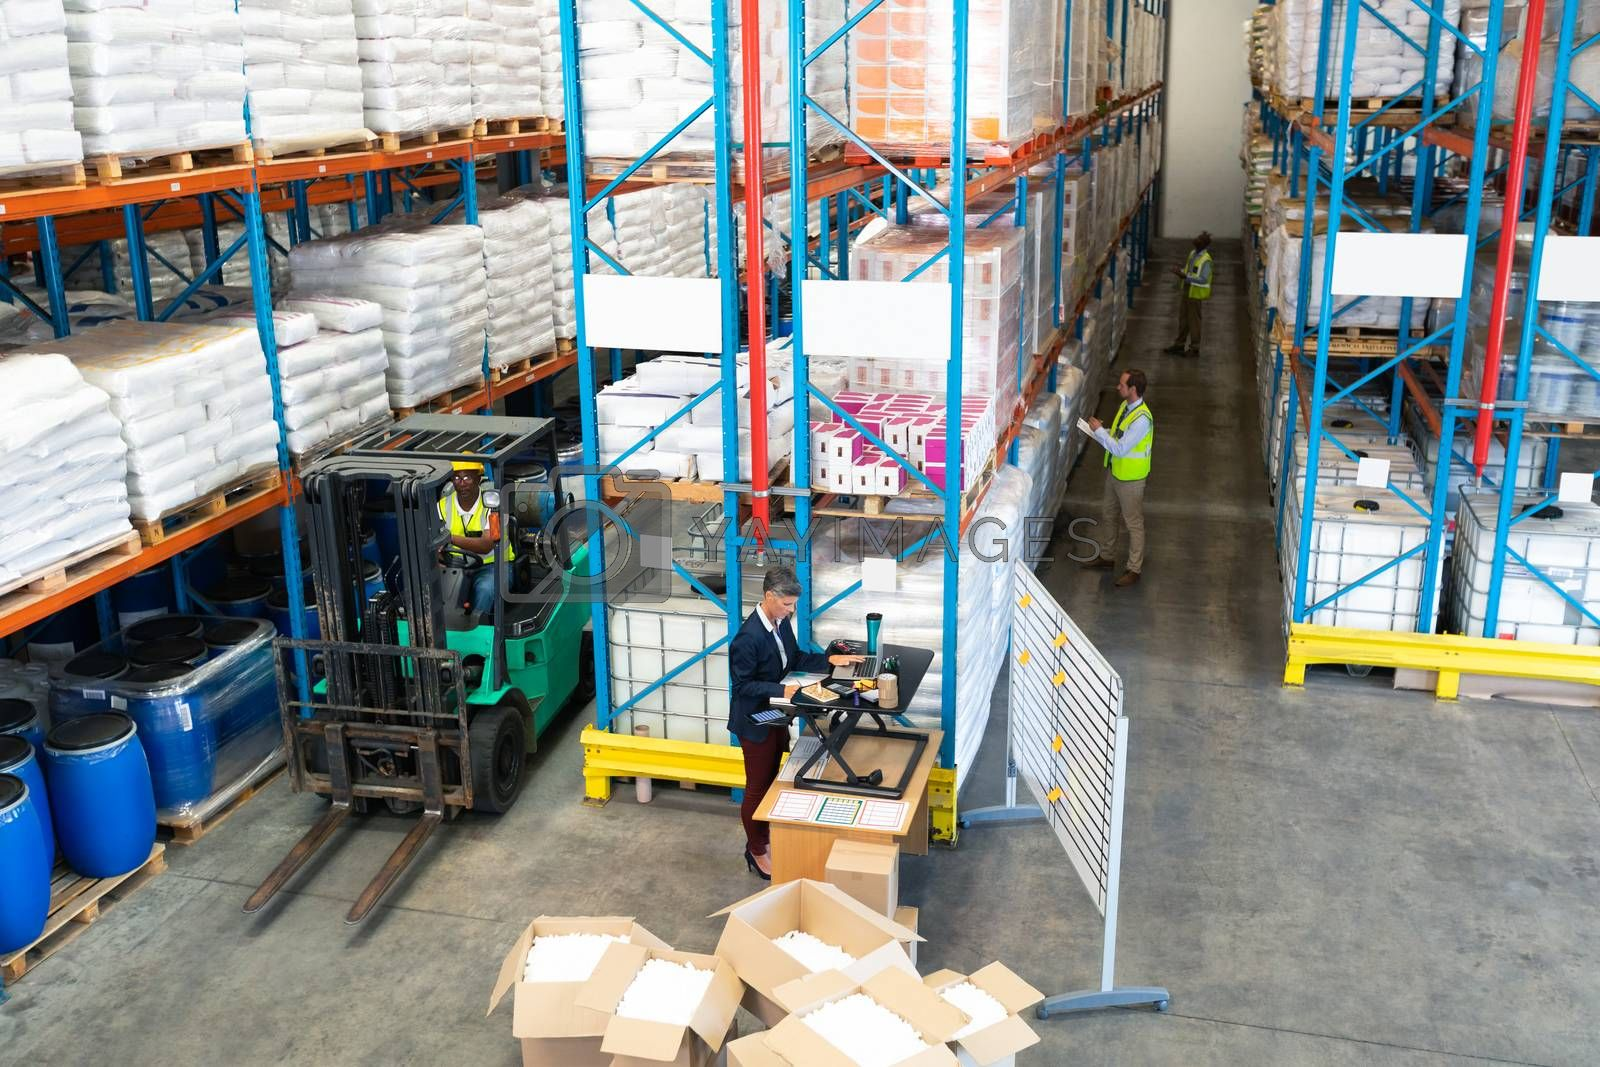 High angle view of mature diverse warehouse staff working together in warehouse. African-american worker driving a forklift in warehouse. This is a freight transportation and distribution warehouse. Industrial and industrial workers concept